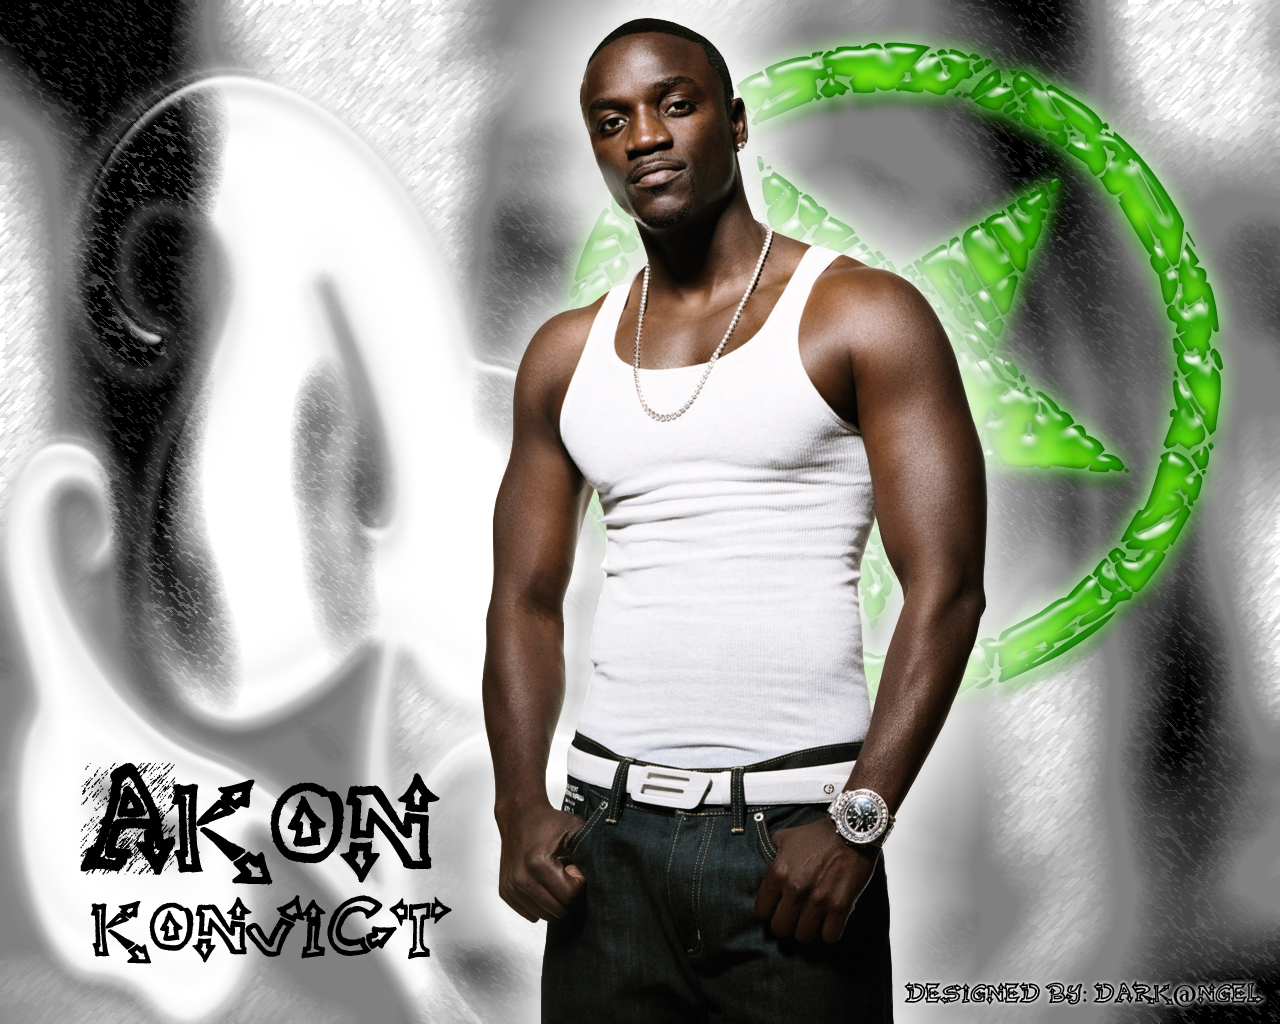 Akon smack that ft eminem - 5 9